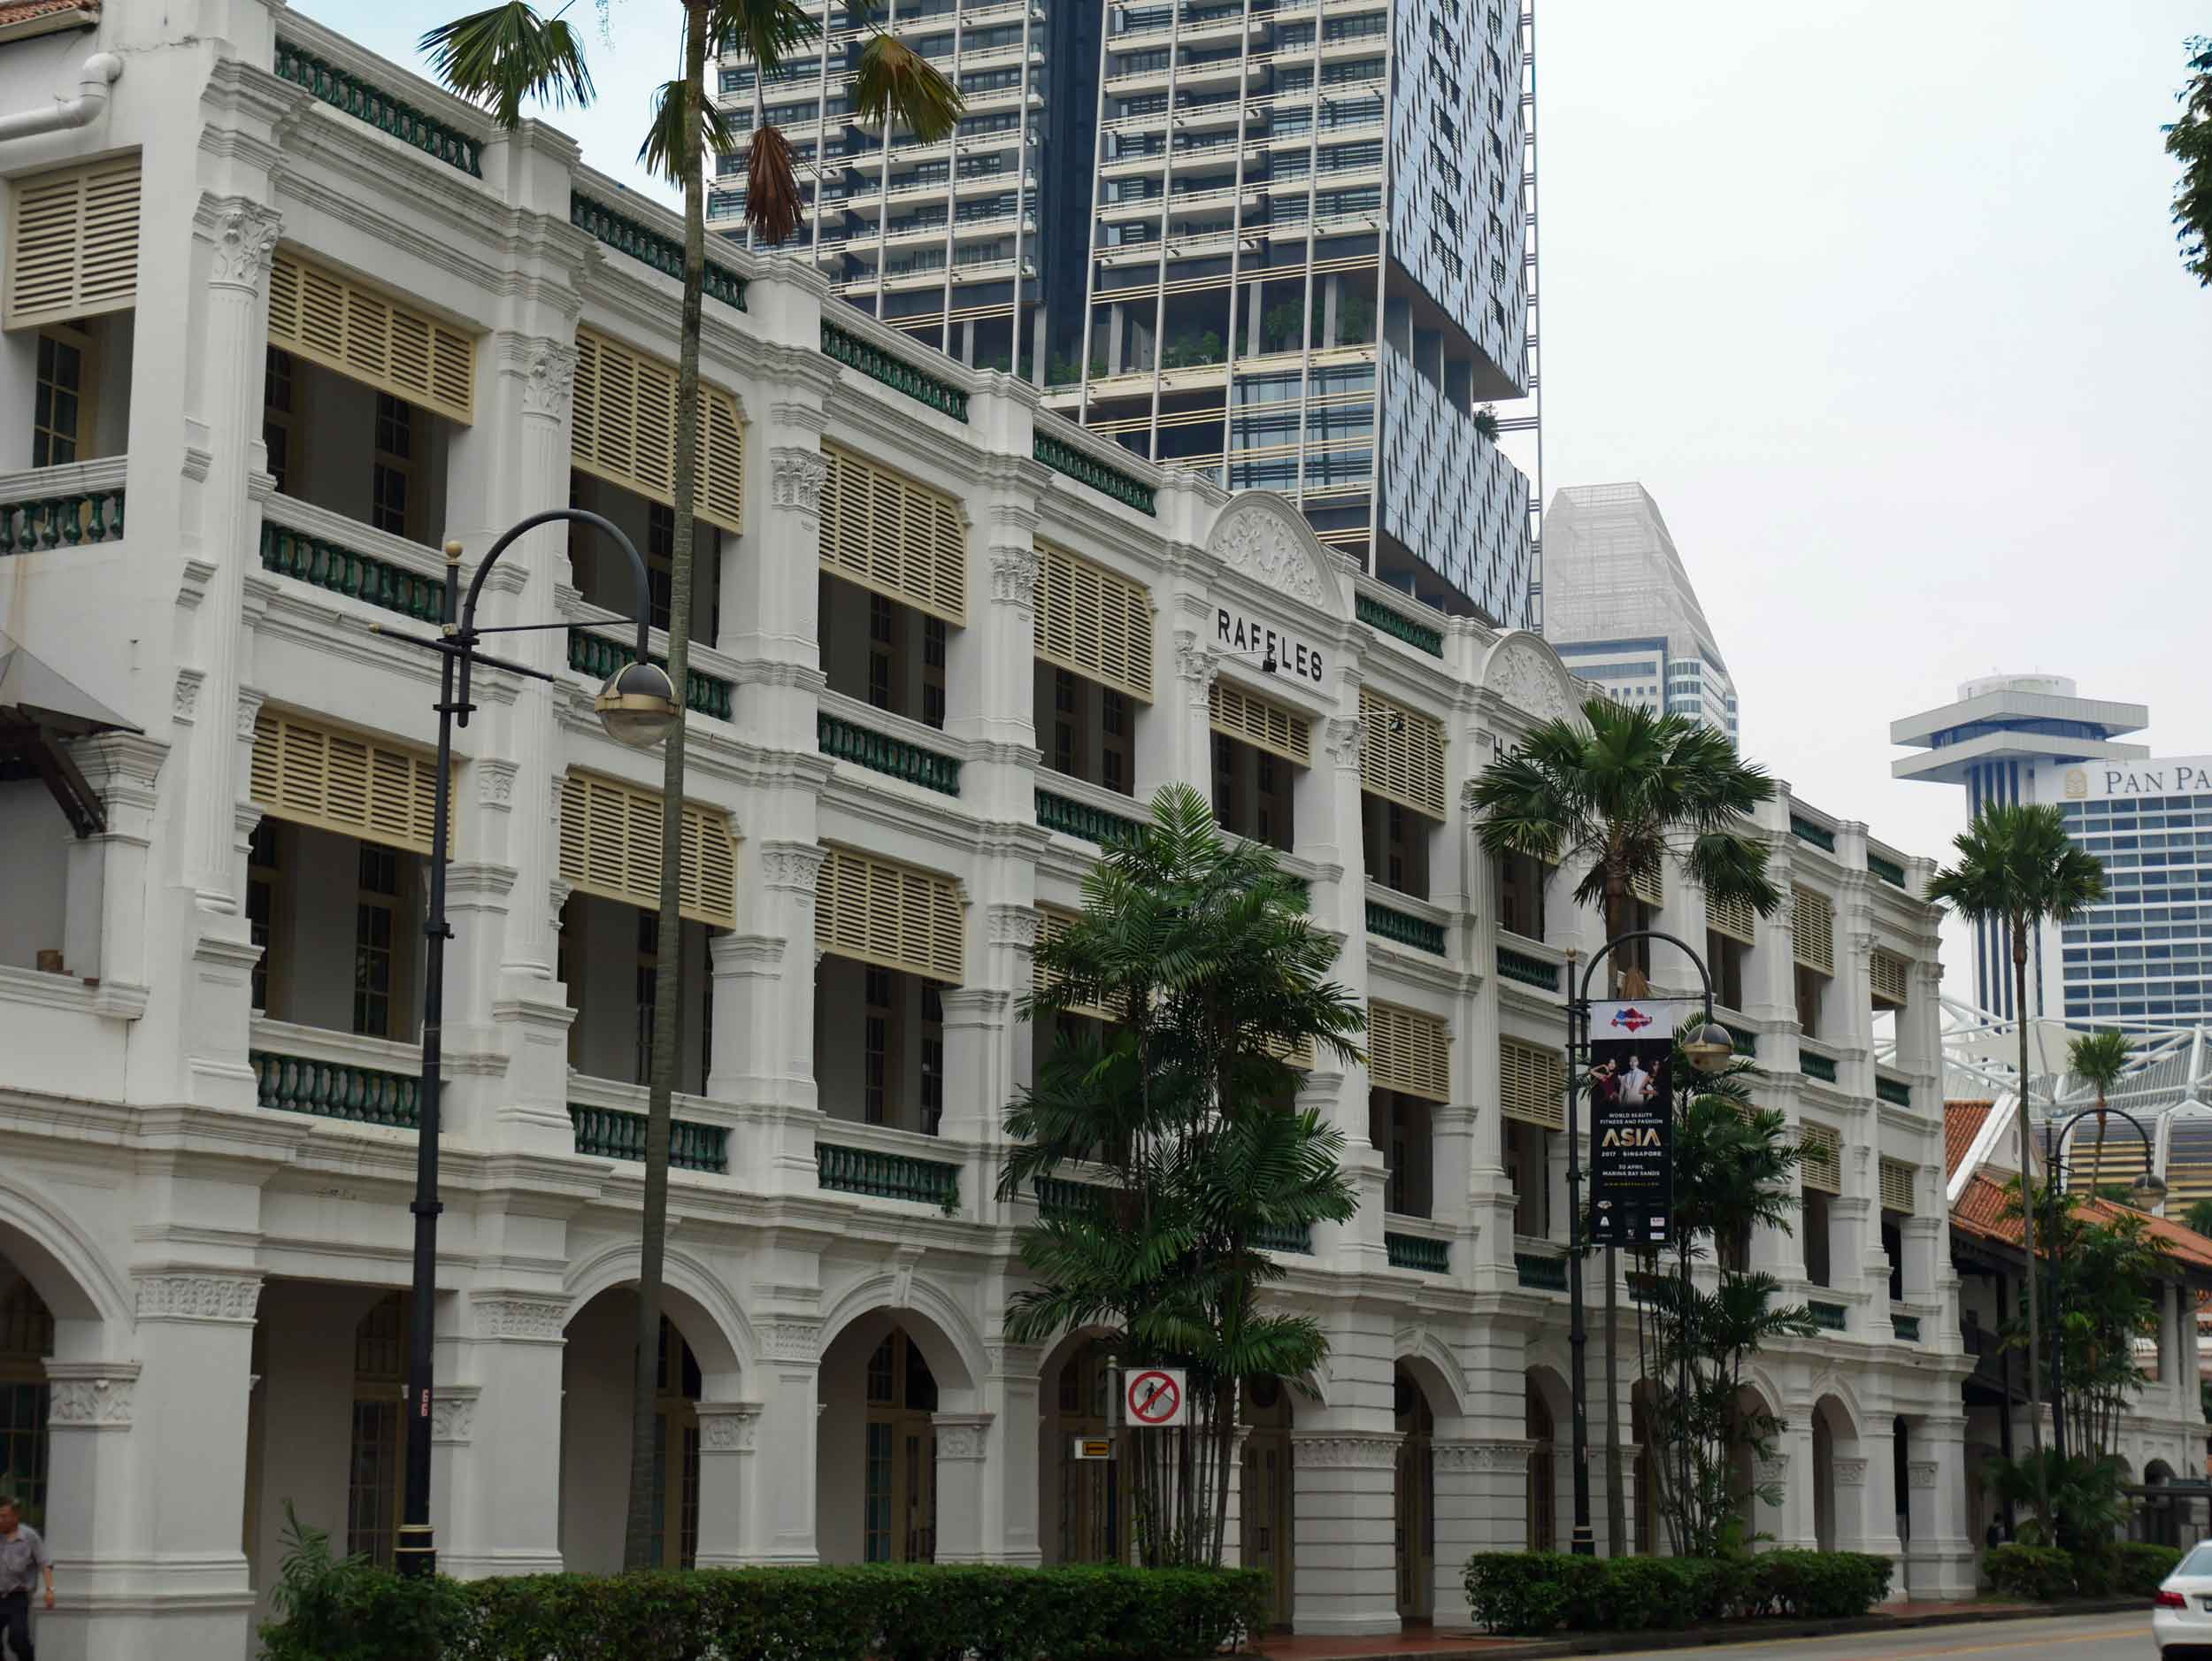 The iconic colonial-style Raffles Hotel, named after Singapore's British founder Sir Thomas Raffles, opened in 1887.